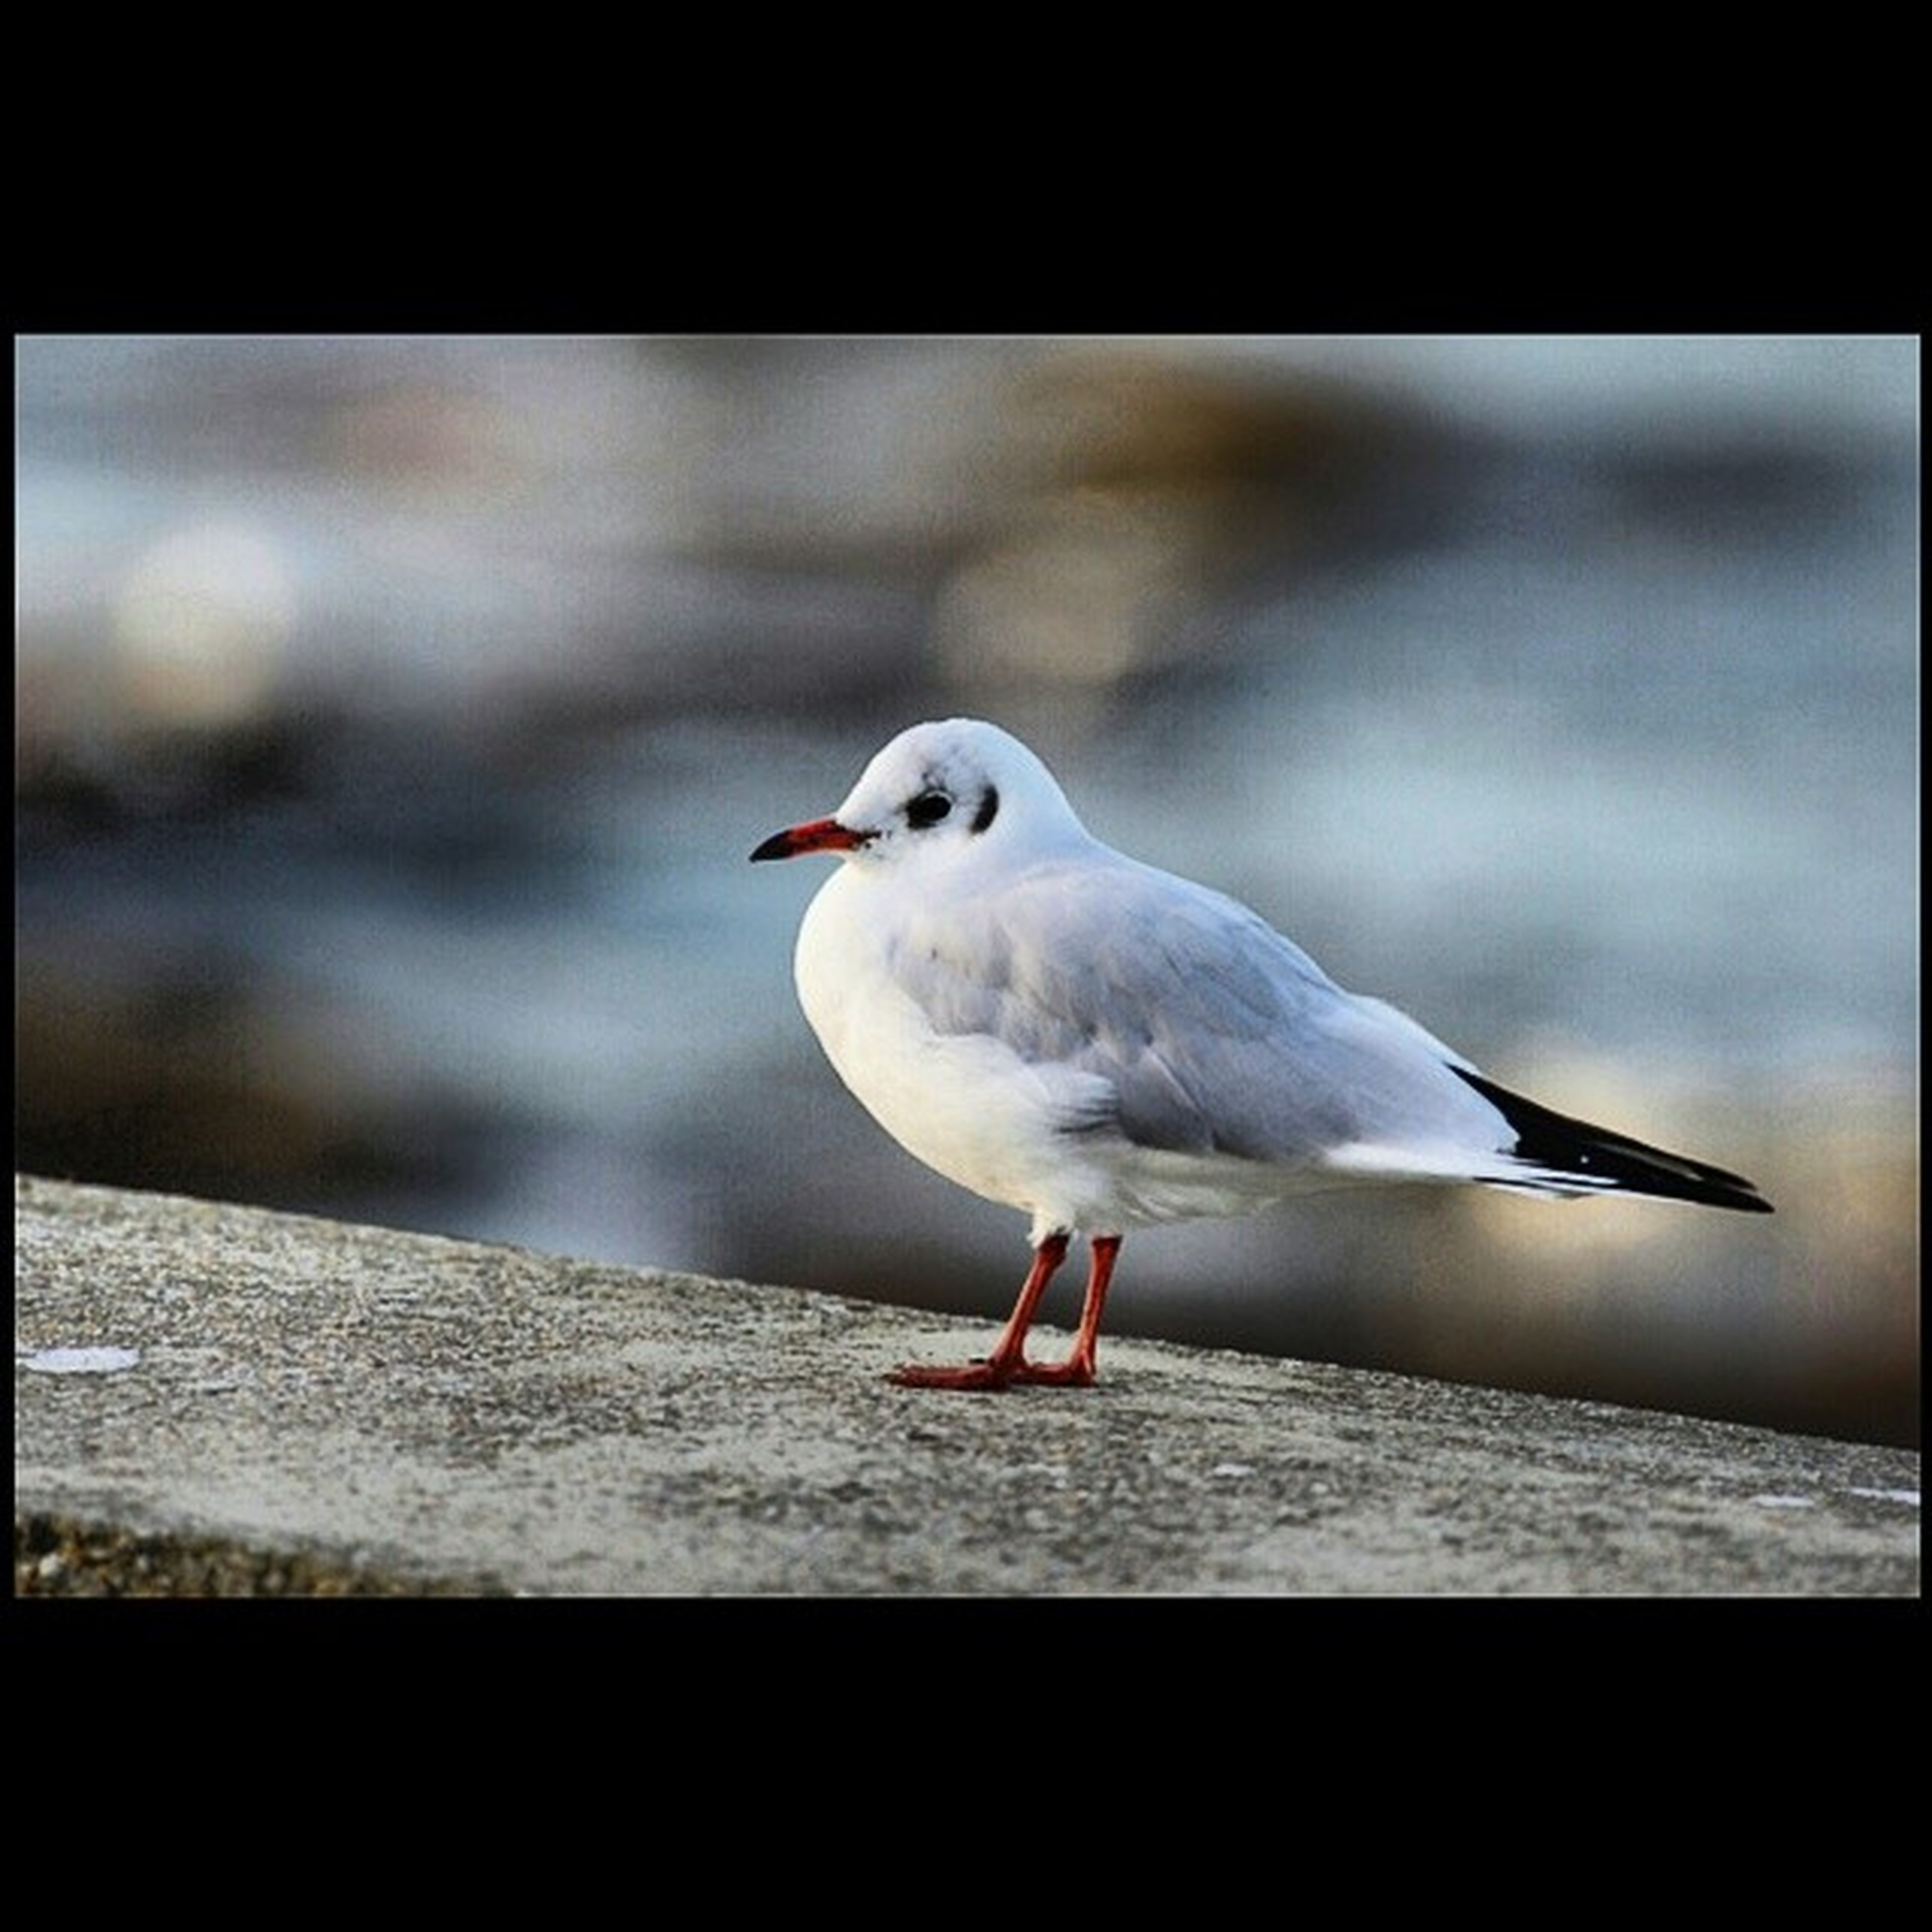 bird, animal themes, transfer print, seagull, wildlife, animals in the wild, one animal, auto post production filter, focus on foreground, full length, beak, perching, white color, close-up, side view, nature, day, outdoors, no people, sea bird